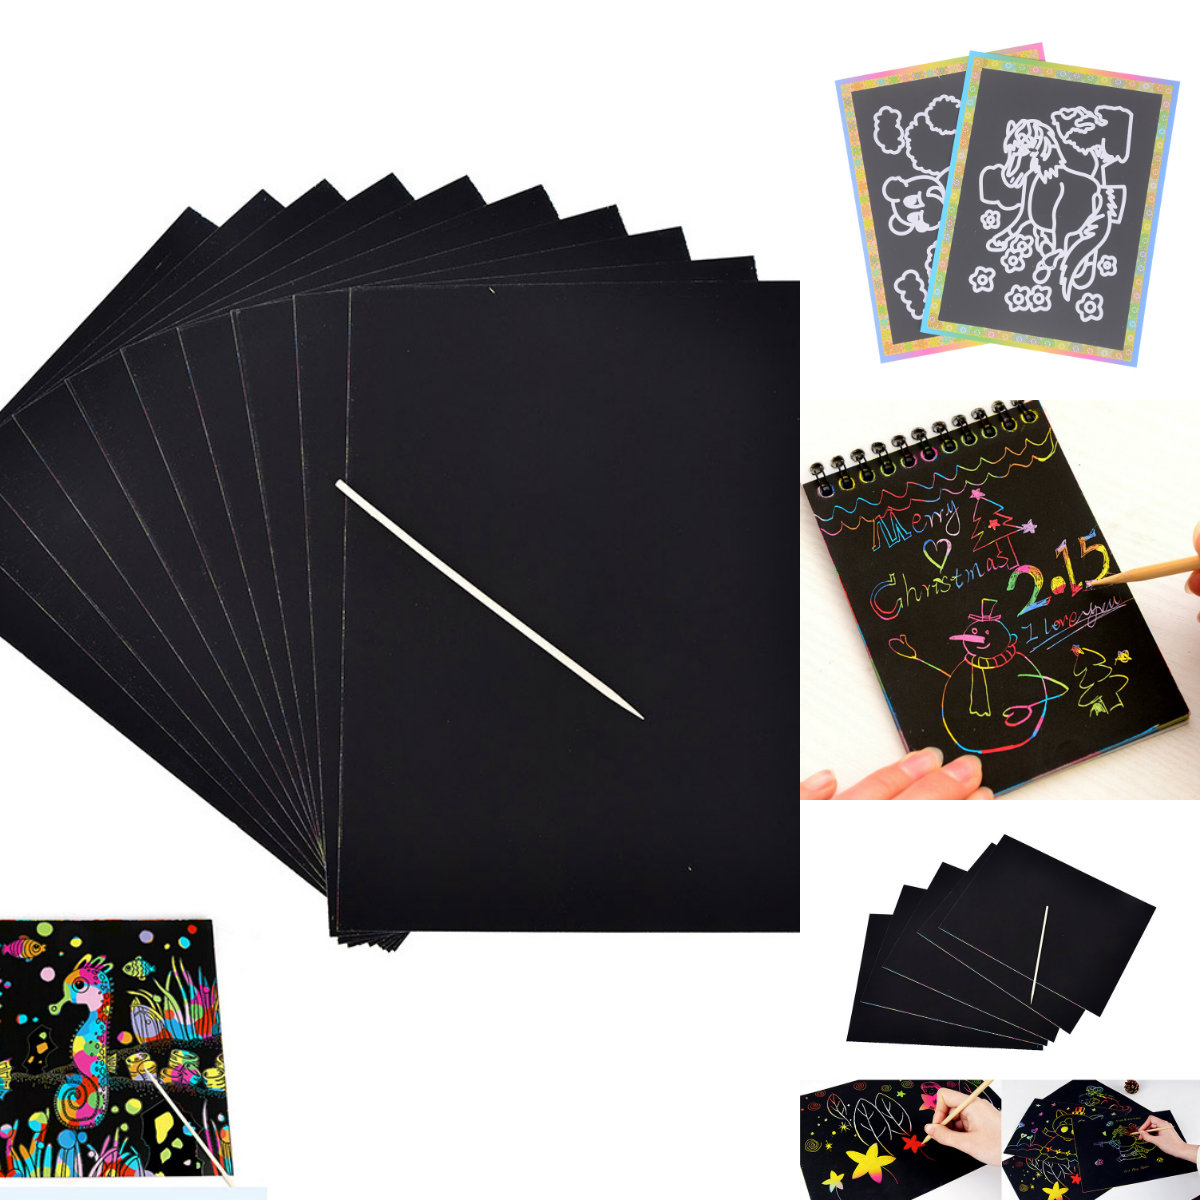 10 Sheets Magic Color Rainbow Scratch Art Paper Card Set With Graffiti Stencil For Drawing Stick DIY Painting Toy Kids